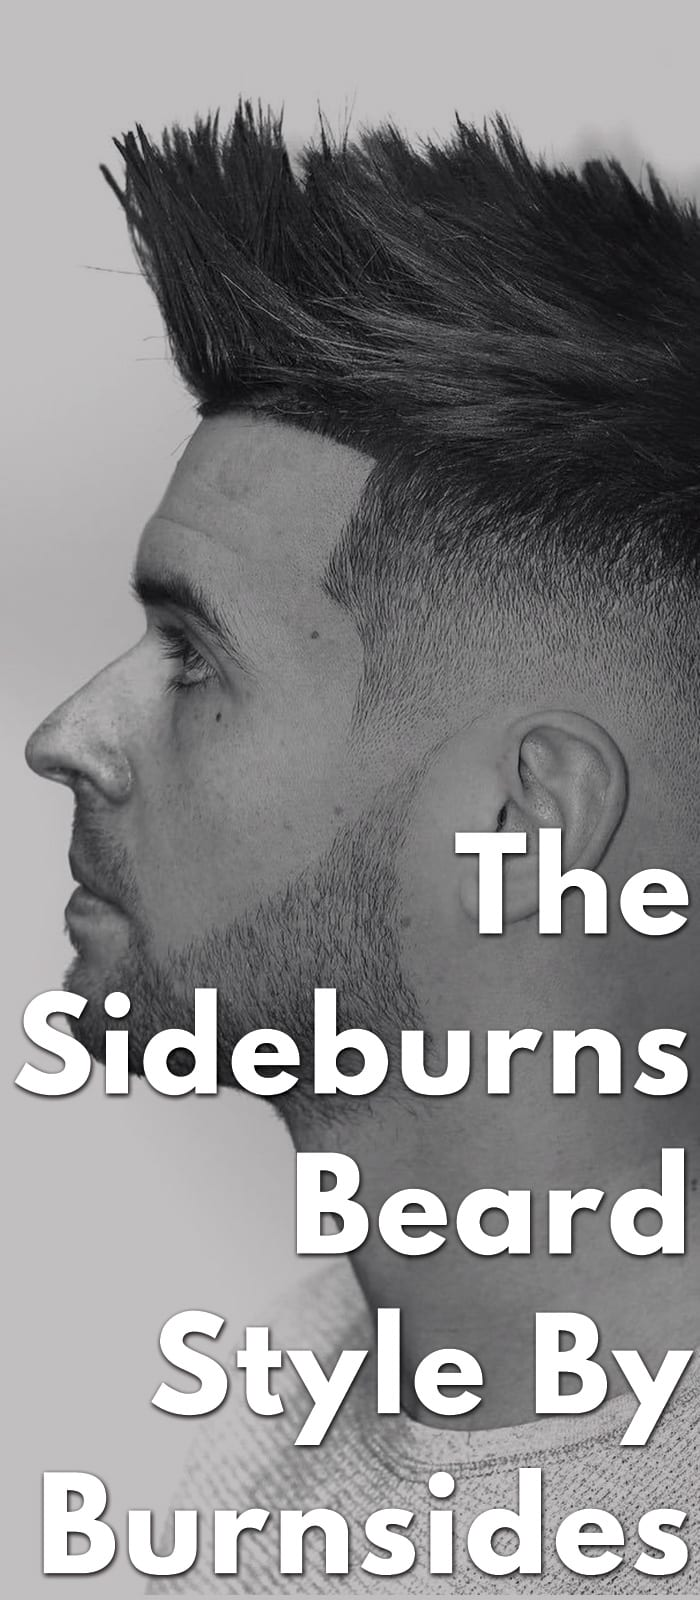 The-Sideburns-Beard-Style-by-Burnsides.